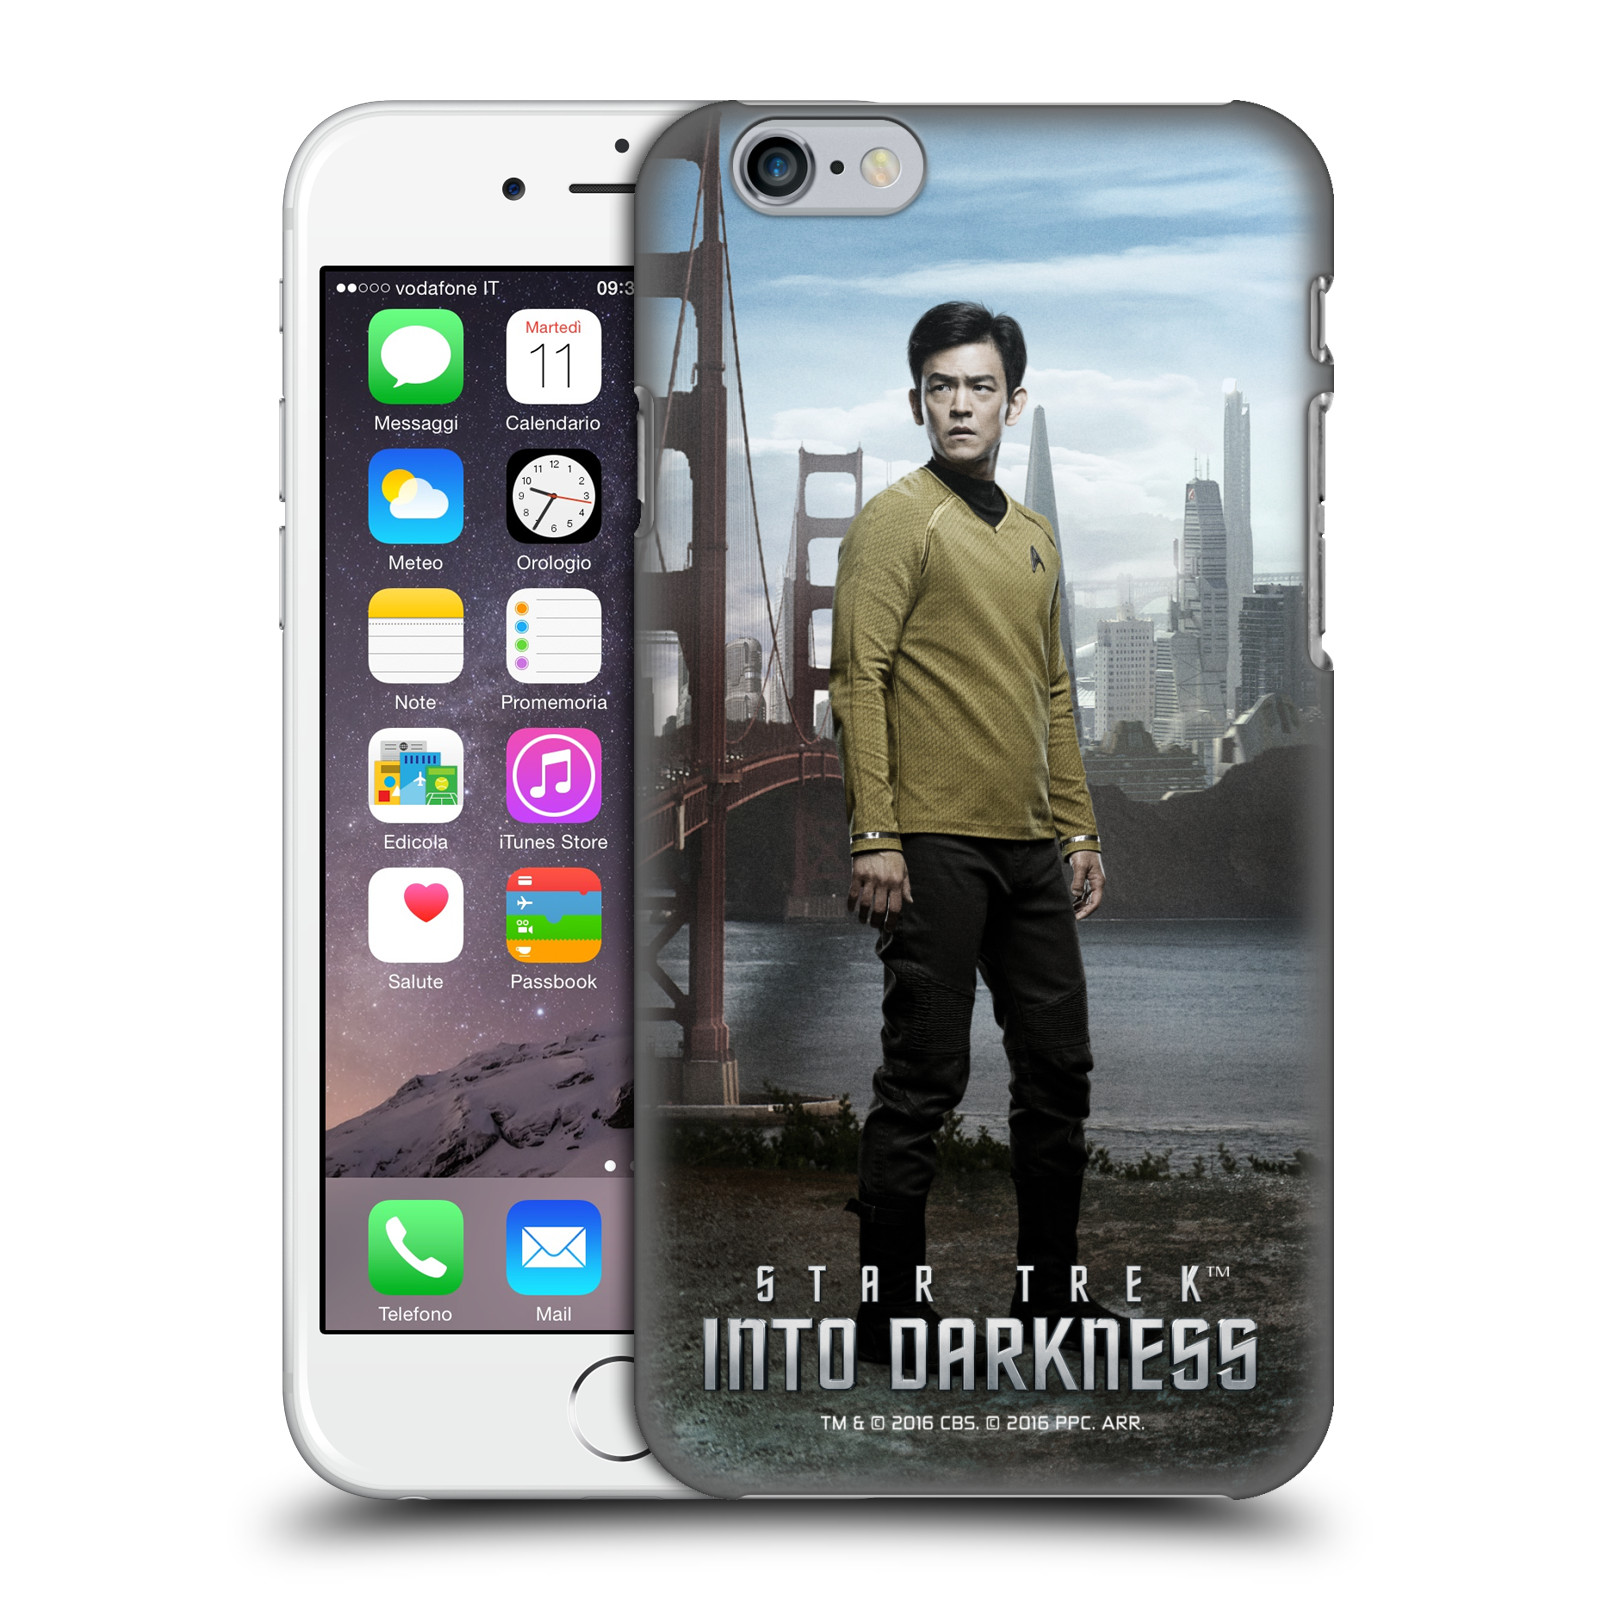 Star Trek Characters Into Darkness XII-Sulu